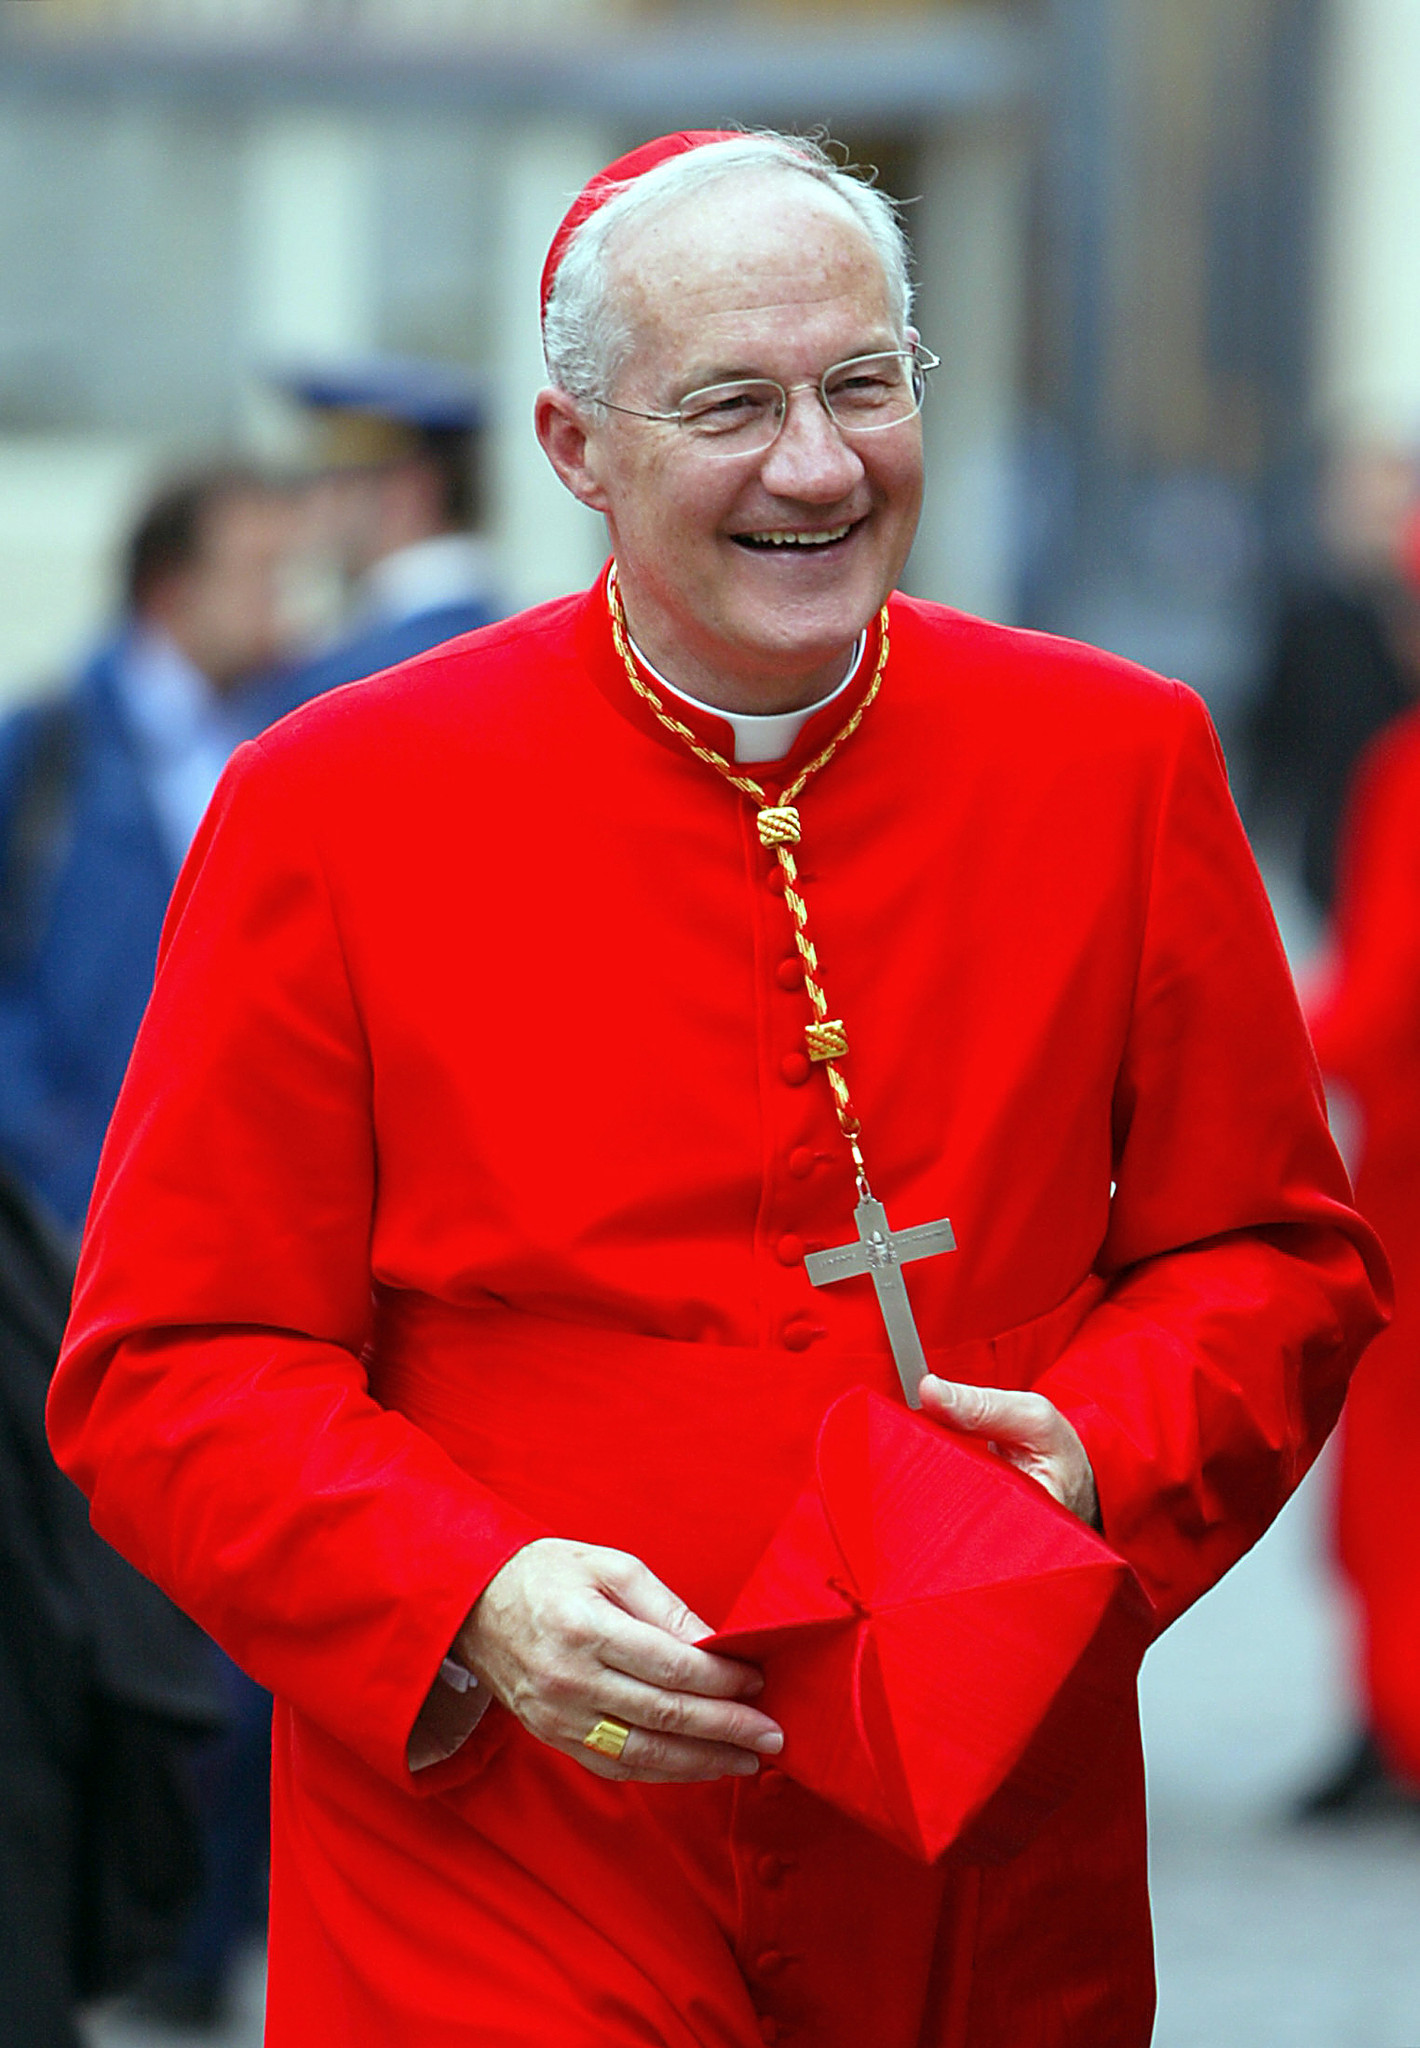 The cardinals who might be pope - Cardinal Marc Ouellet